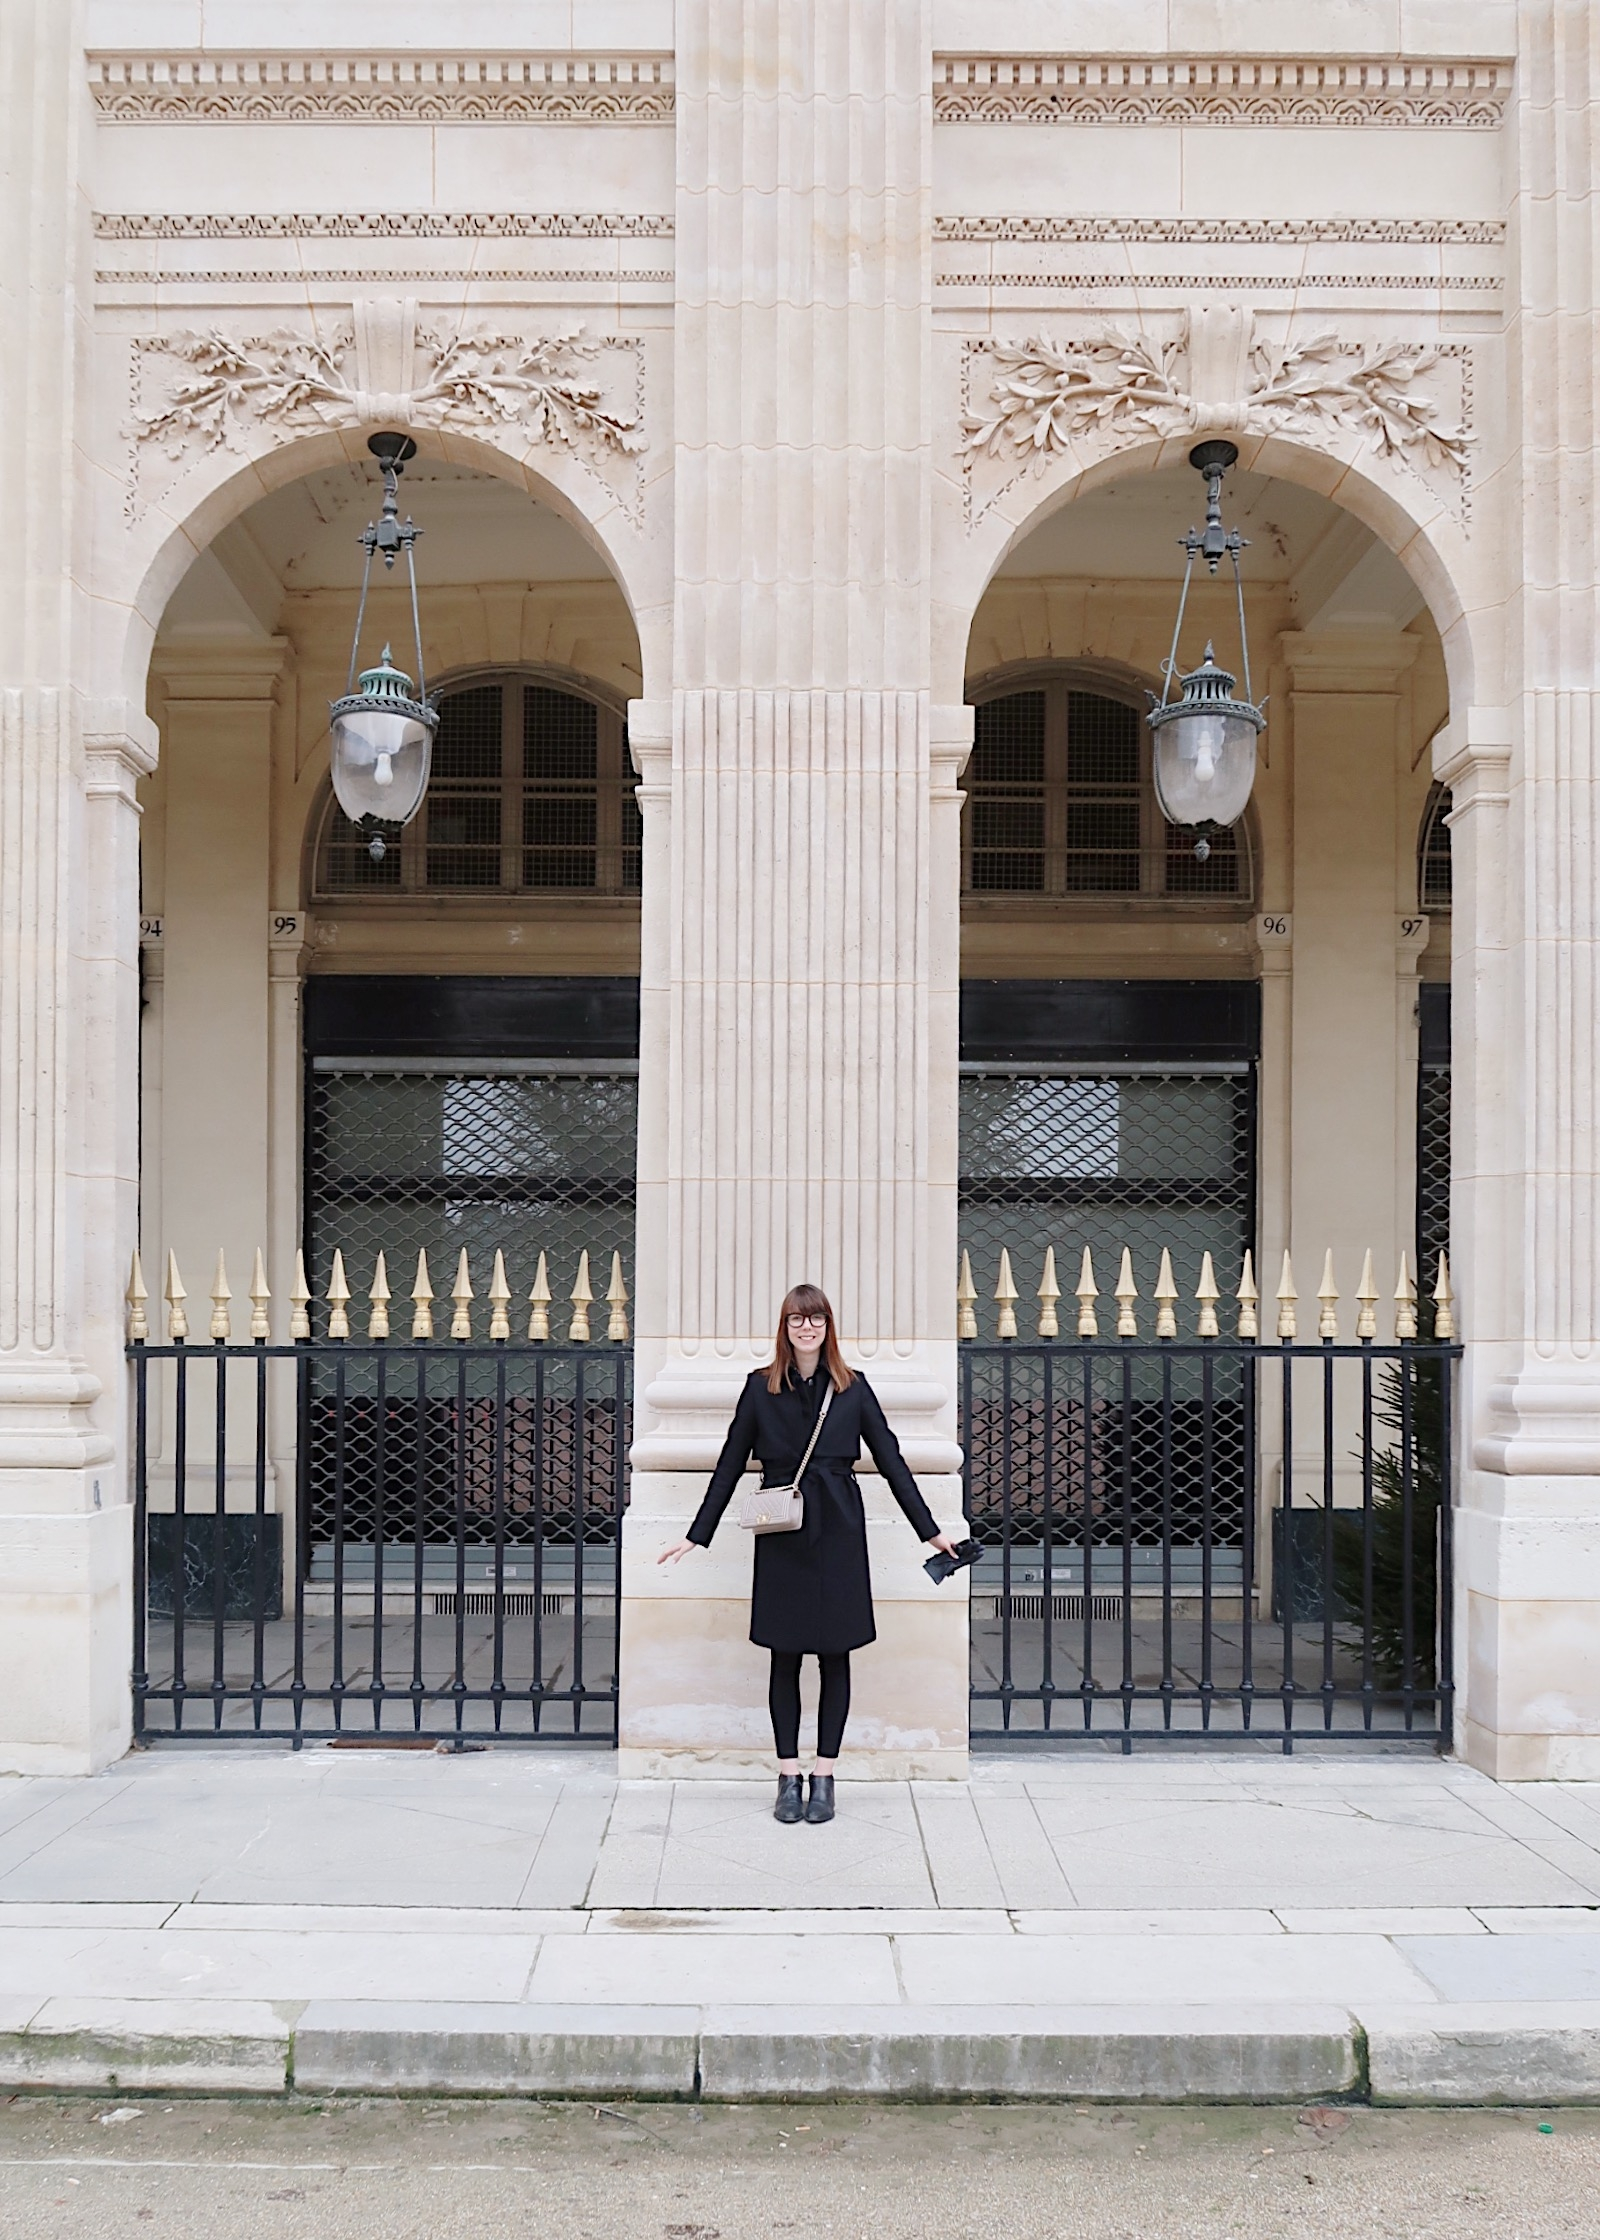 A Vegan Girls Weekend to Paris | The best spot for a photo op in Paris? Forget the Eiffel Tower - it's all about the Palais Royale  | Sundays and Somedays